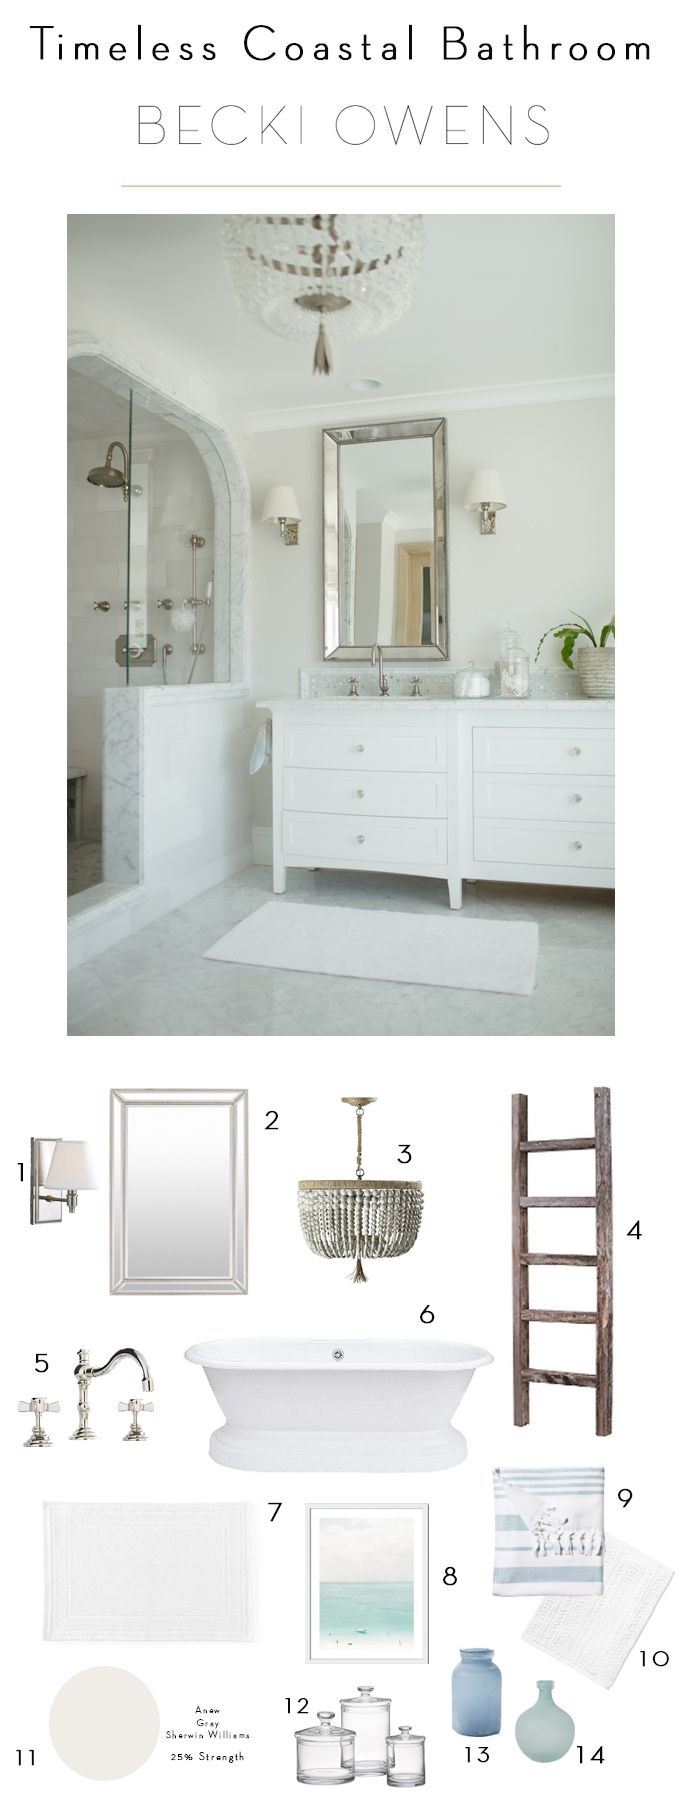 Turquoise Bathrooms Timeless And Captivating Interior: 25+ Best Ideas About Timeless Bathroom On Pinterest